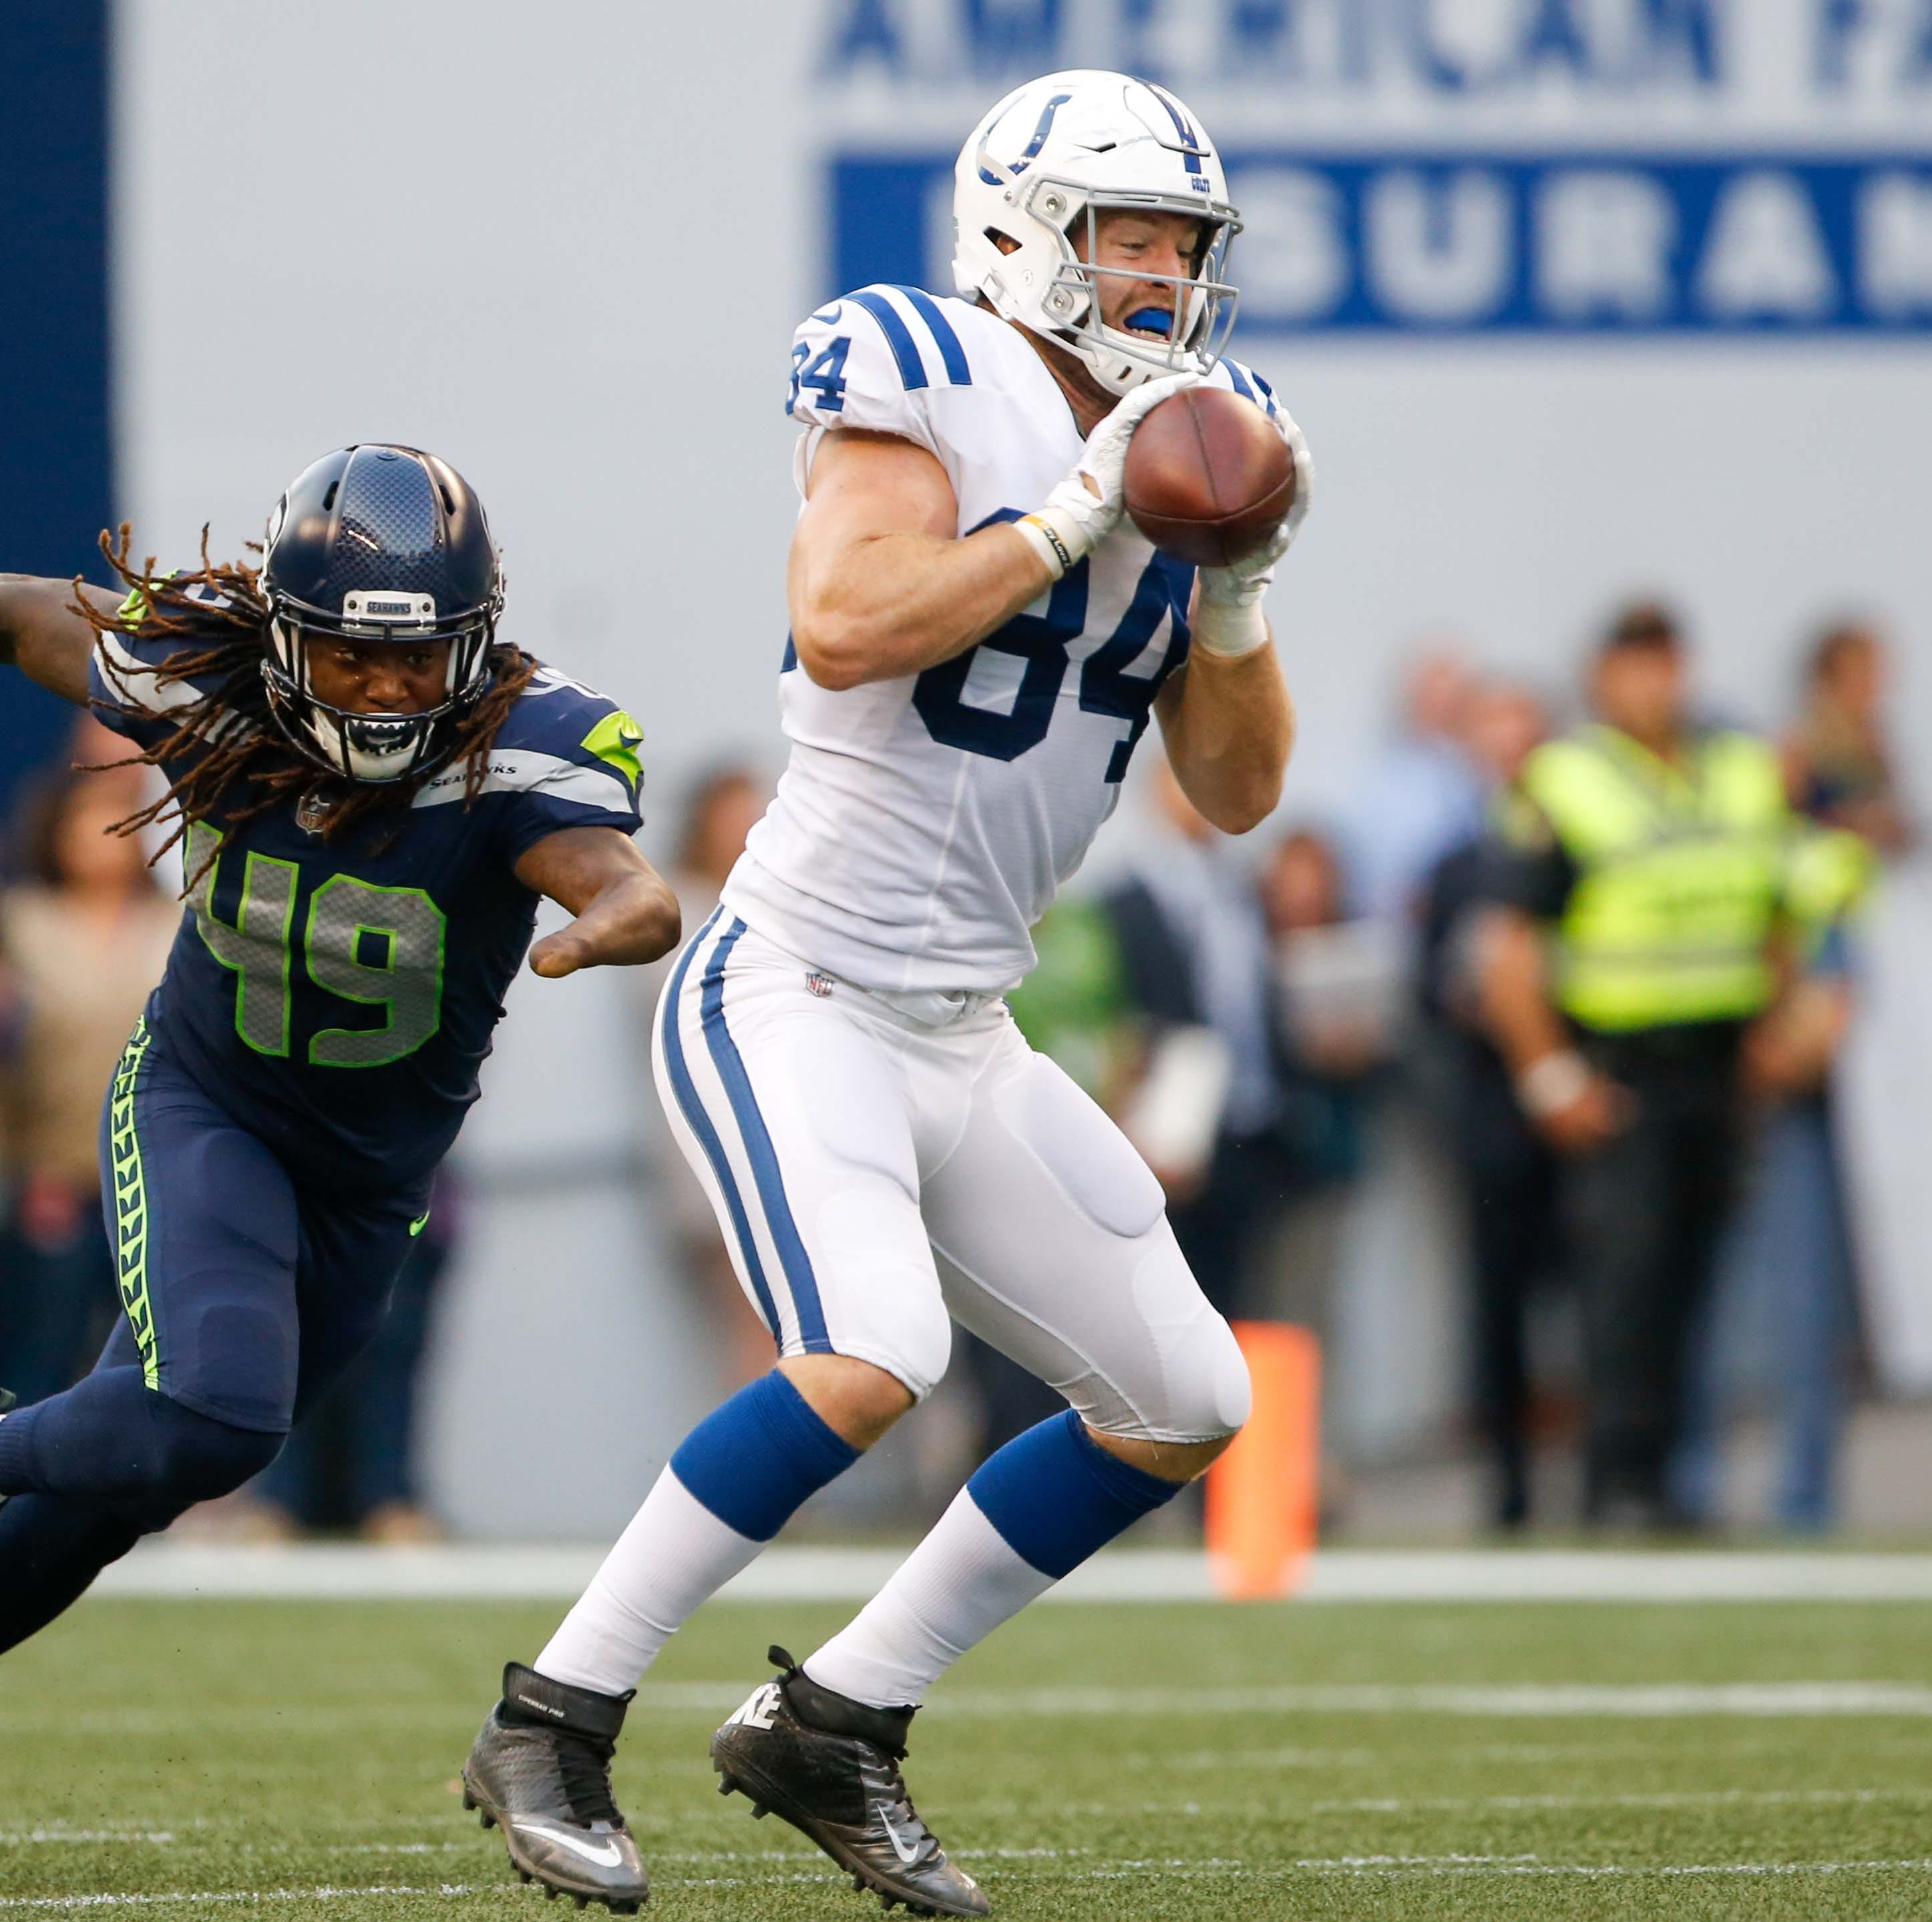 Colts beat Seahawks, Marlon Mack leaves with injury